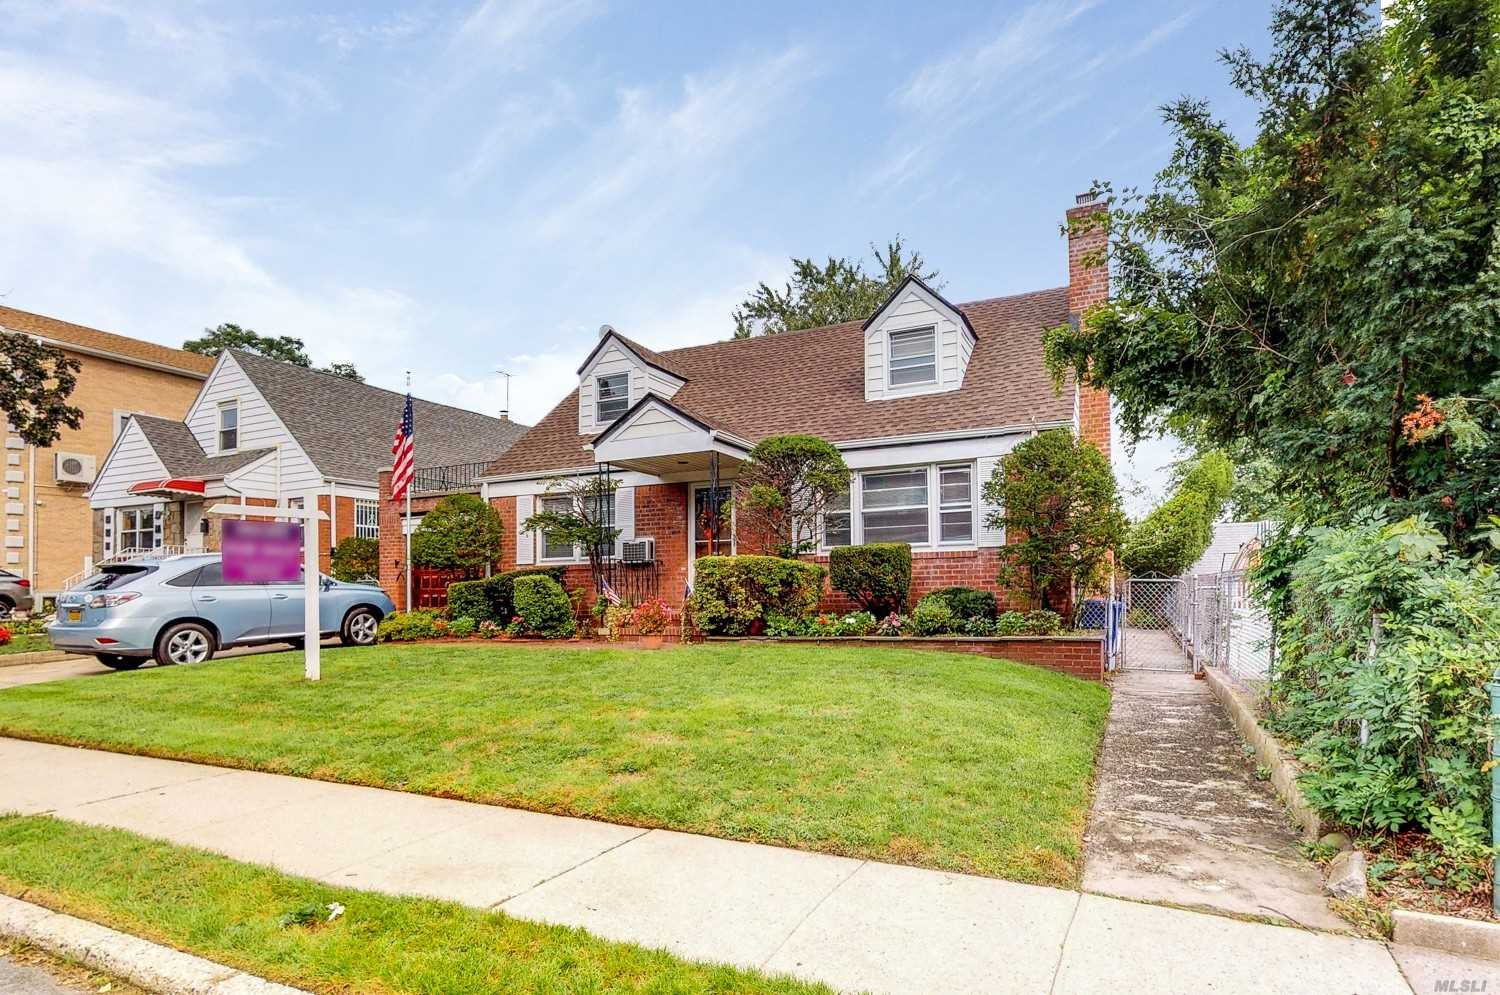 Located In The Heart Of Fresh Meadows. Zoned To Renowned School District #26, This Beautiful Cape Cod And One Of A Kind Find Features And Eat-Kitchen, Formal Dining Room, Living Room, 4 Bedrooms, 2 Bathrooms, Finished Basement,  Large Garden, And A Private Driveway With A 1 Car Garage!